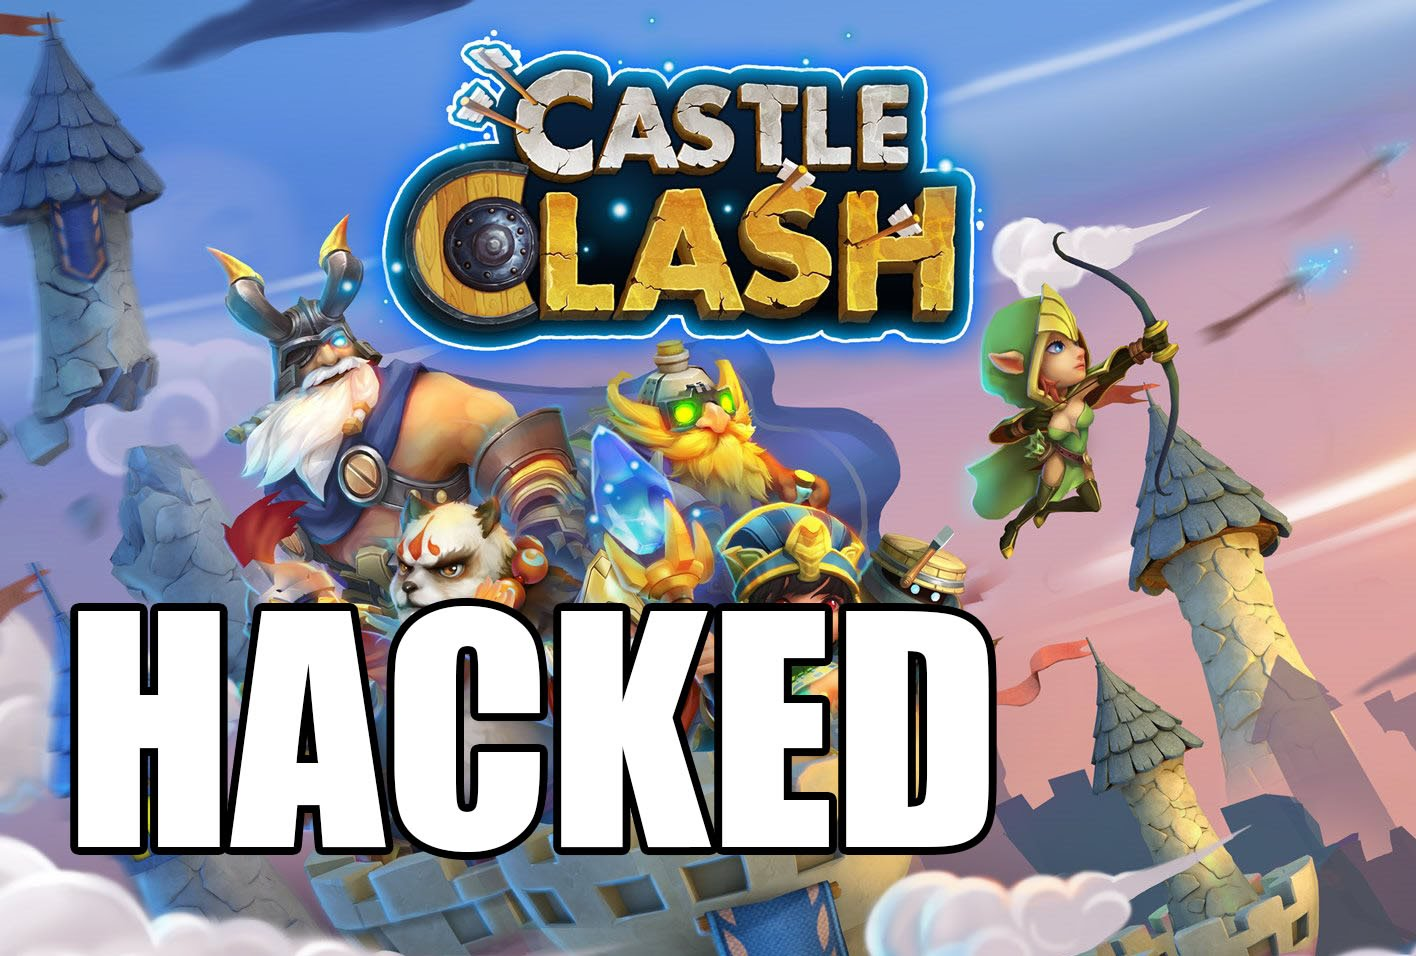 【CASTLECLASHHACKER.COM CASTLE CLASH】 Gems and Golds FOR ANDROID IOS PC PLAYSTATION   100% WORKING METHOD   GET UNLIMITED RESOURCES NOW